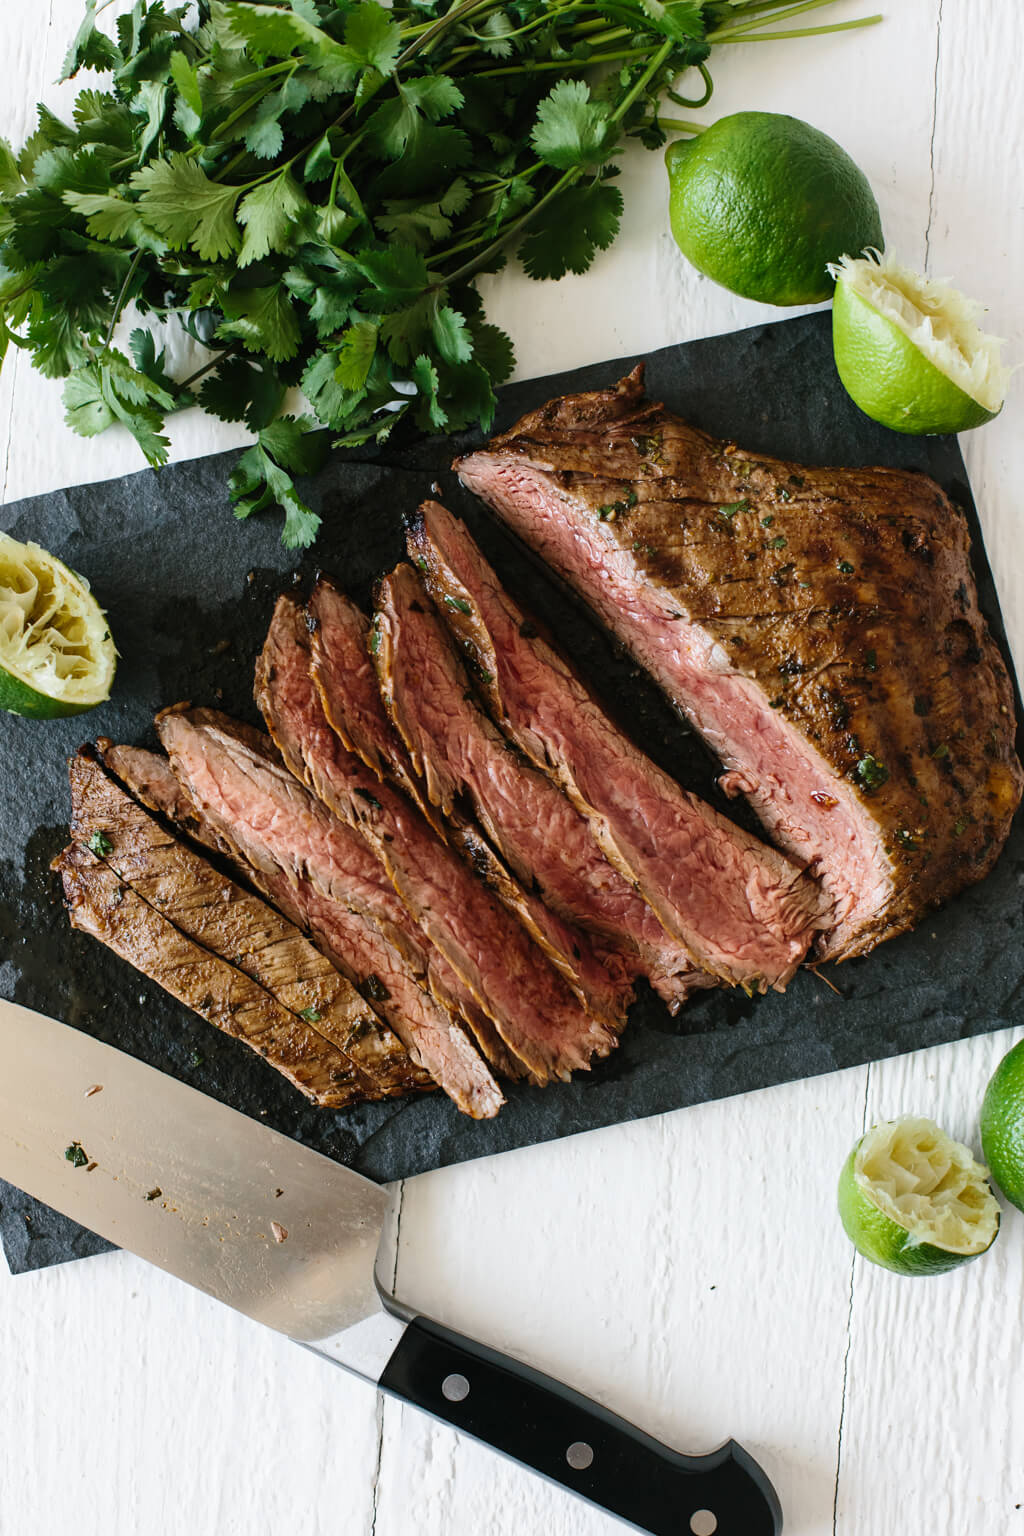 Carne asada steak sliced into pieces on a cutting board, next to limes and cilantro.